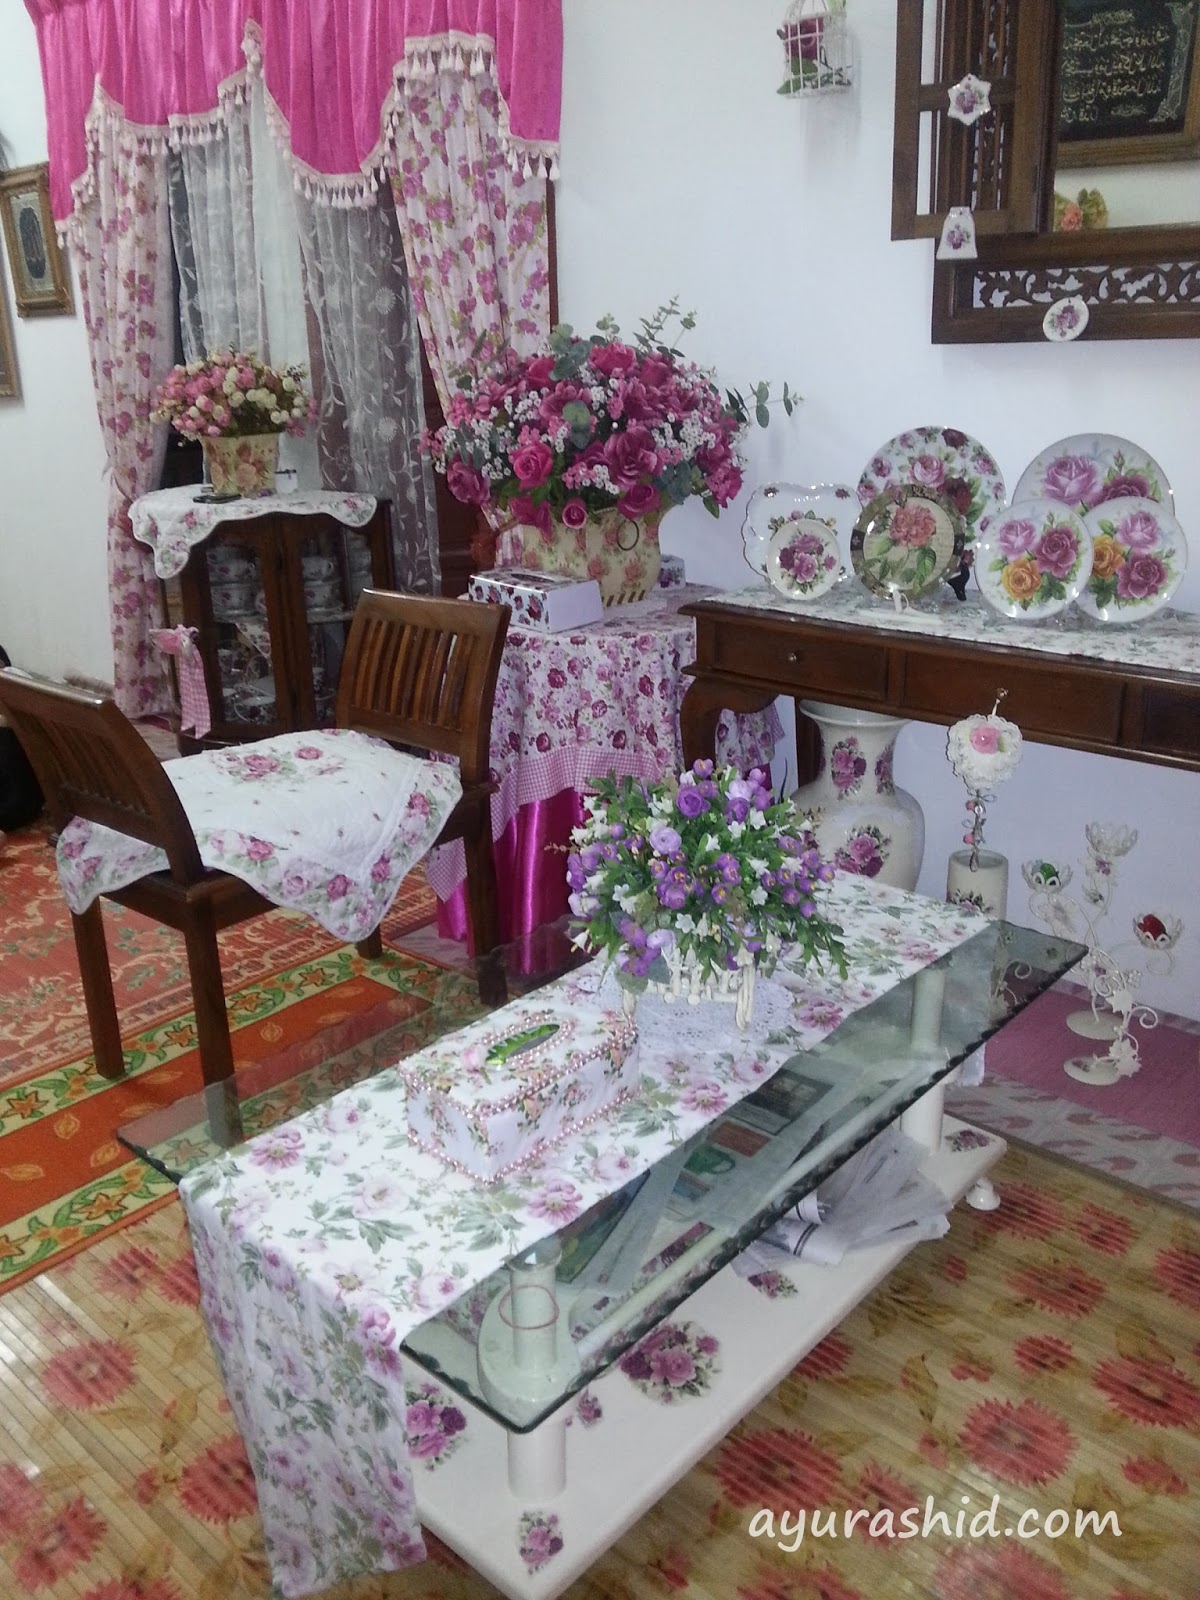 Ayu Rashid Home Deko Inspirasi English Style